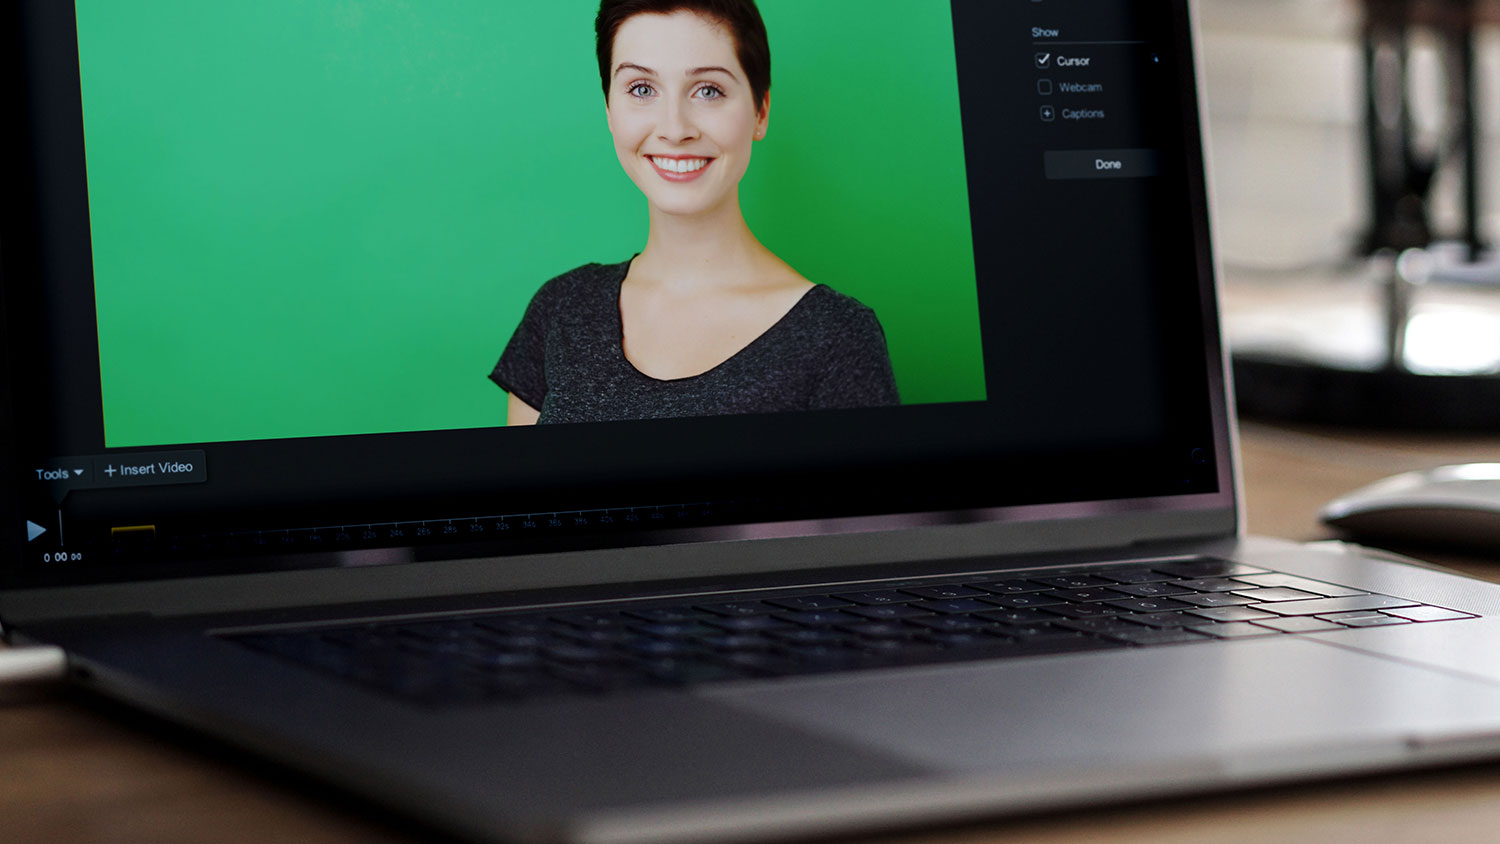 Remove Your Background with Green Screen (Chroma Key)